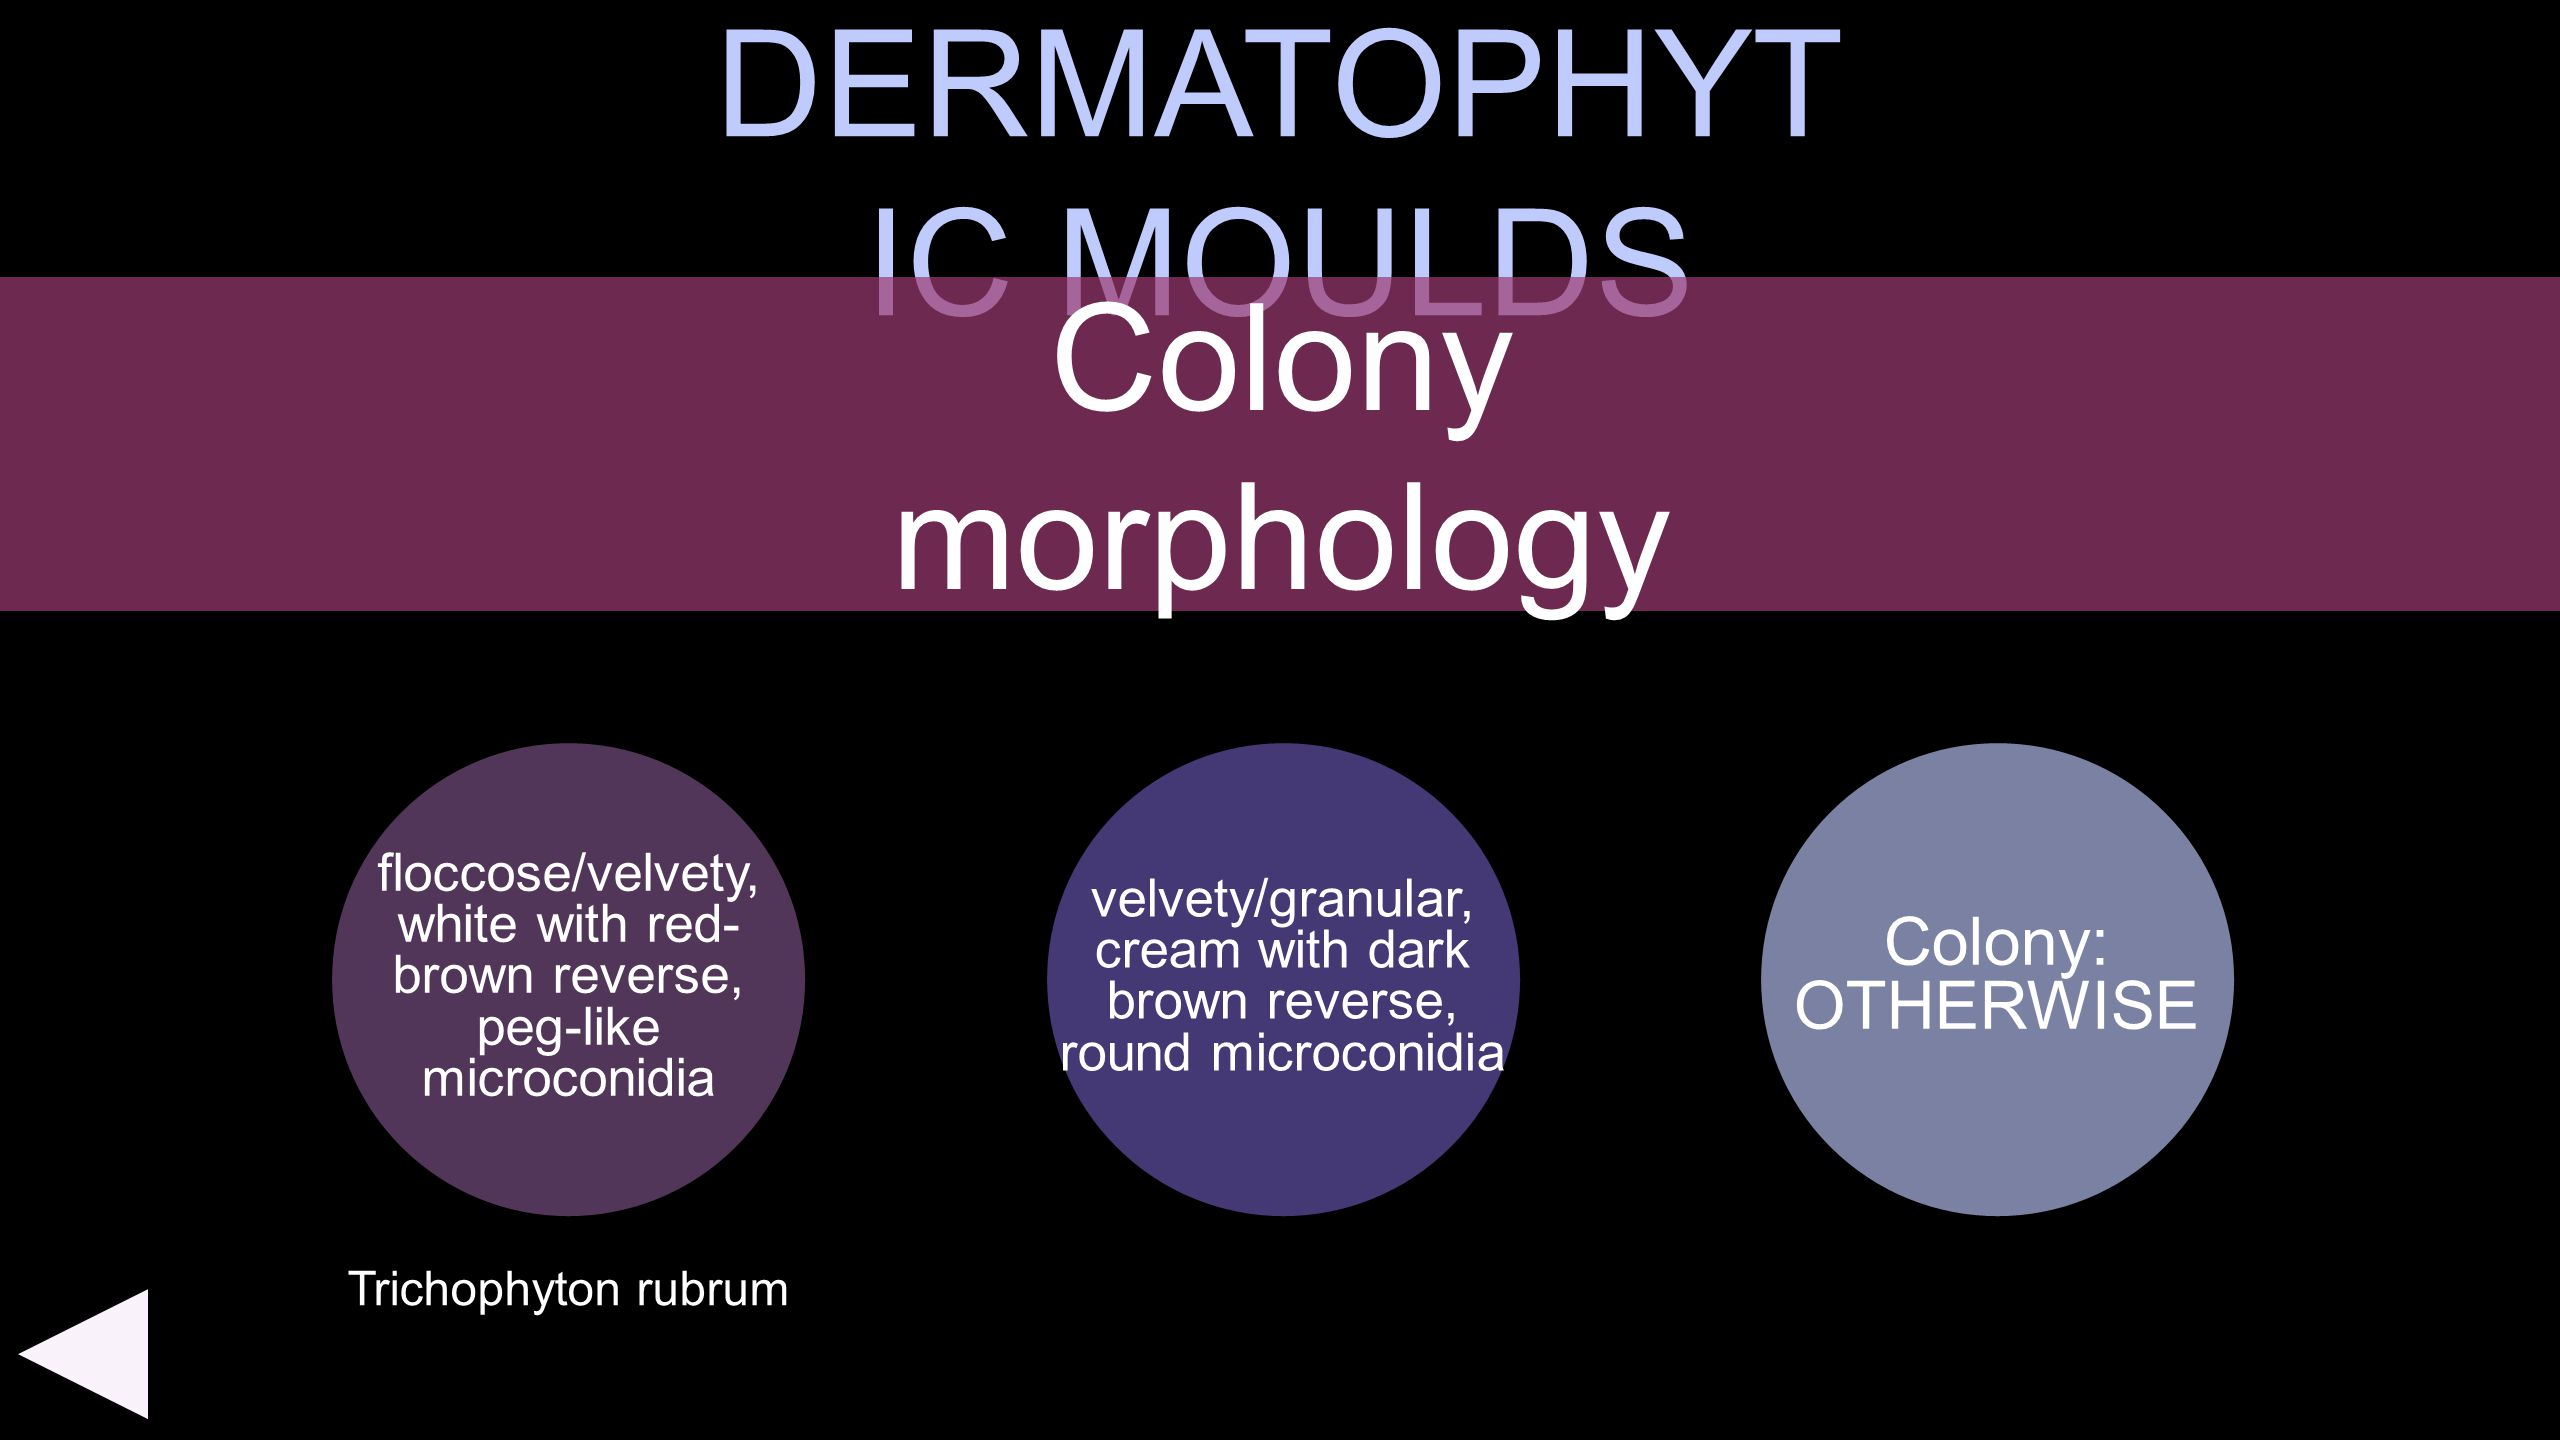 DERMATOPHYTIC MOULDS Colony morphology Colony: OTHERWISE